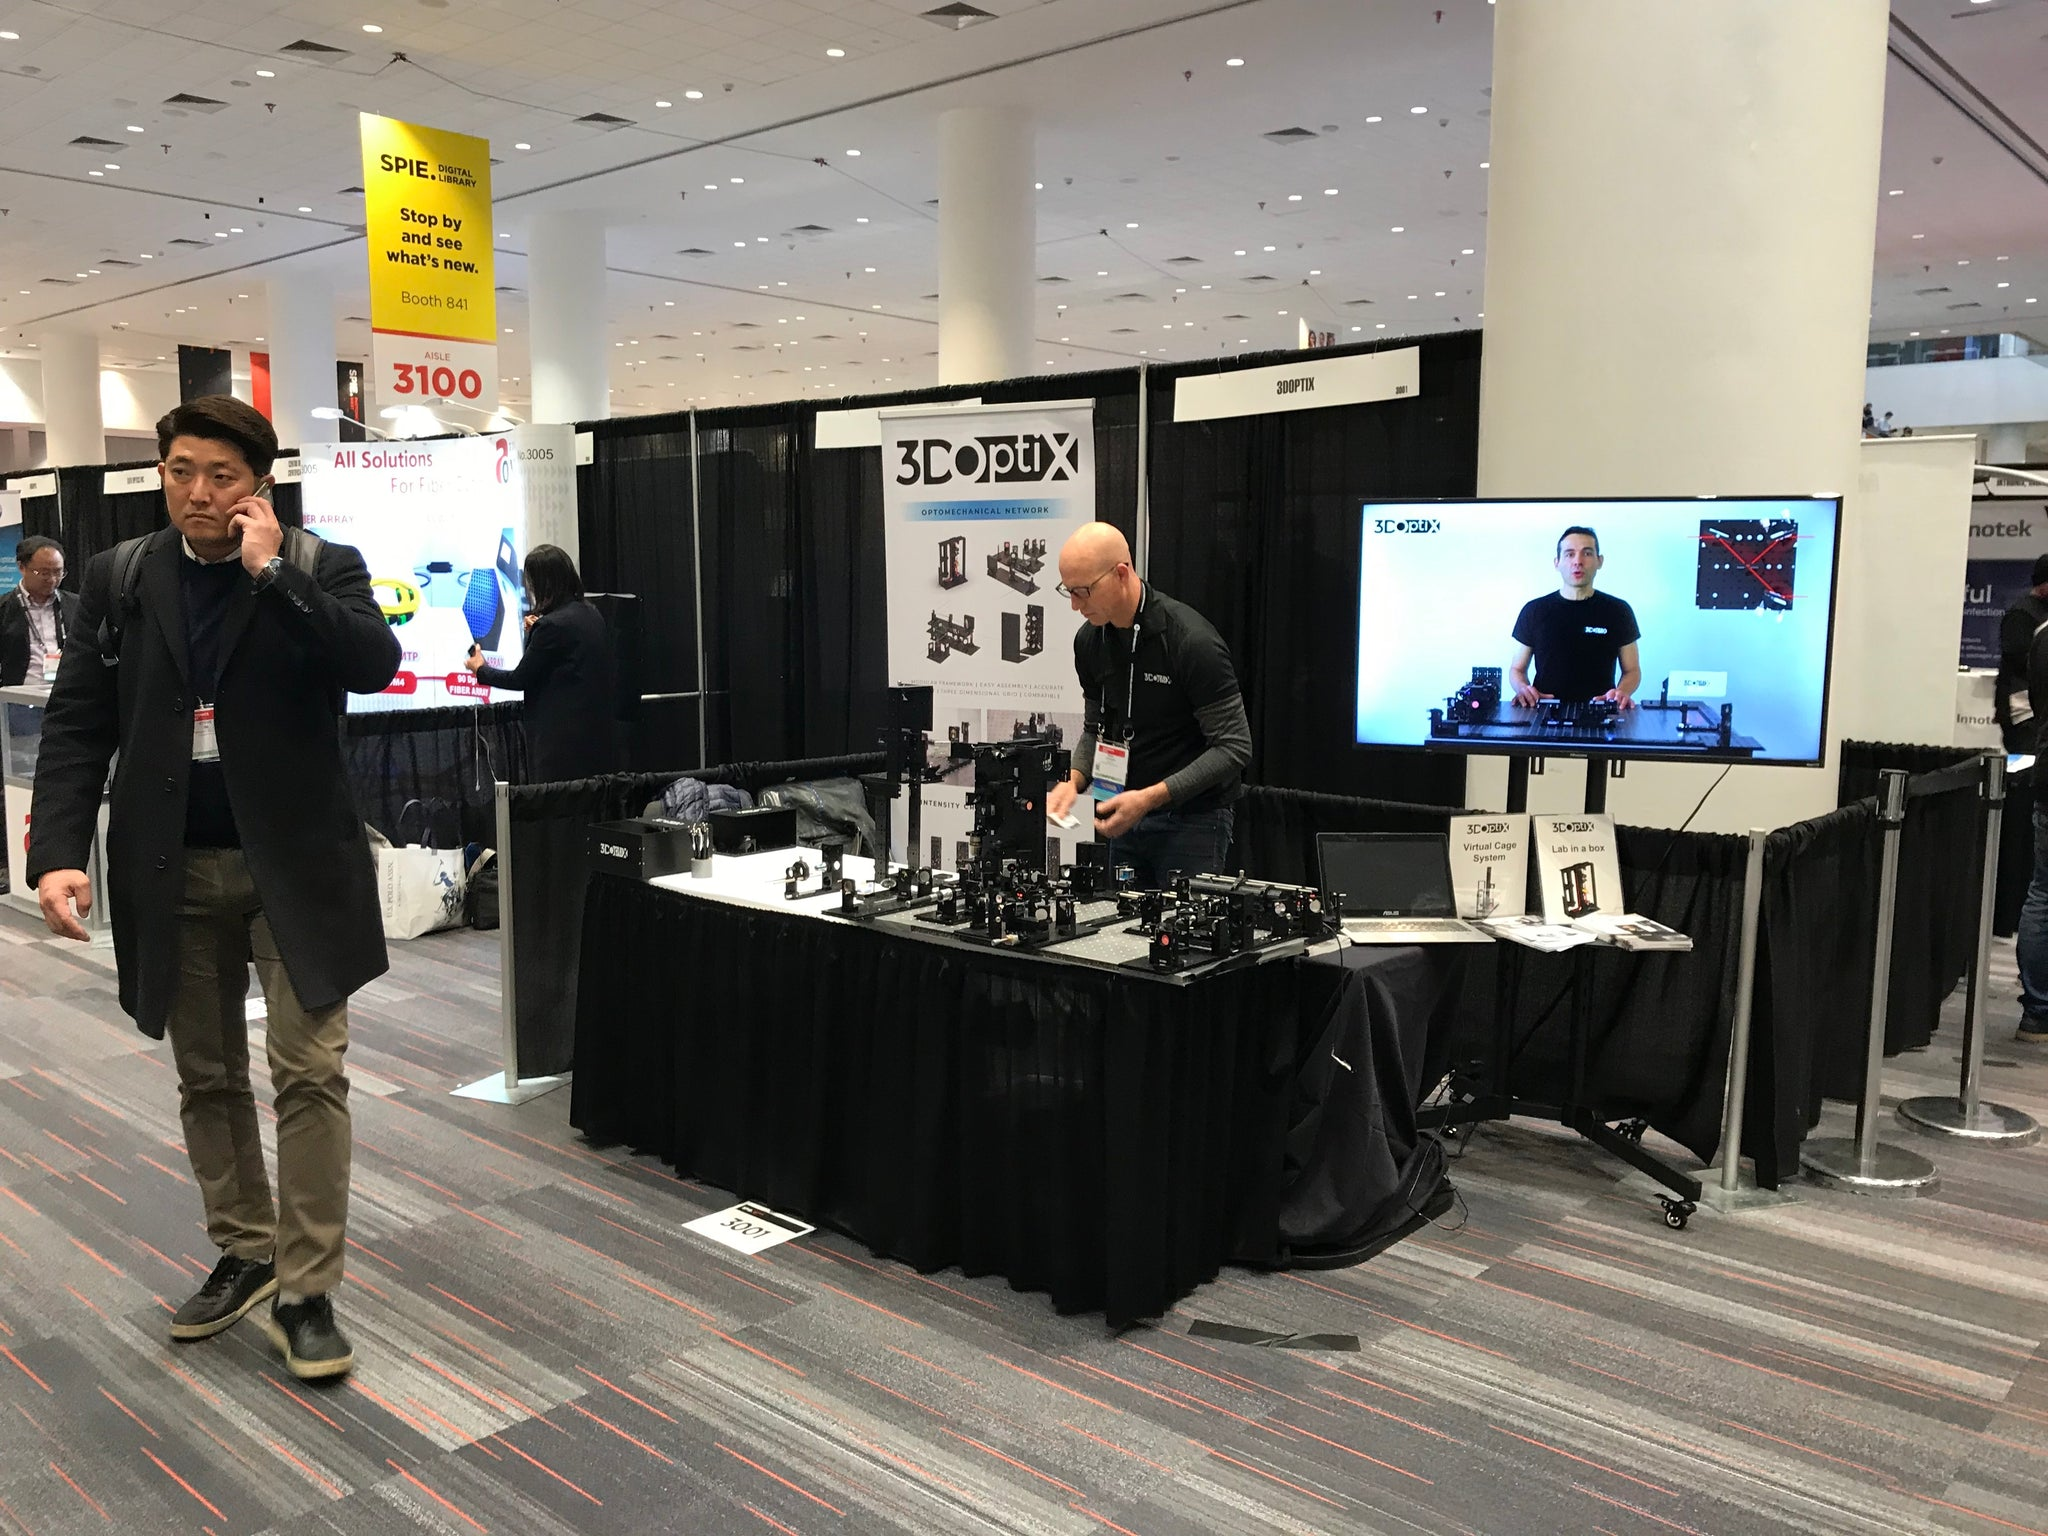 3DOptix @ Photonics West 2019